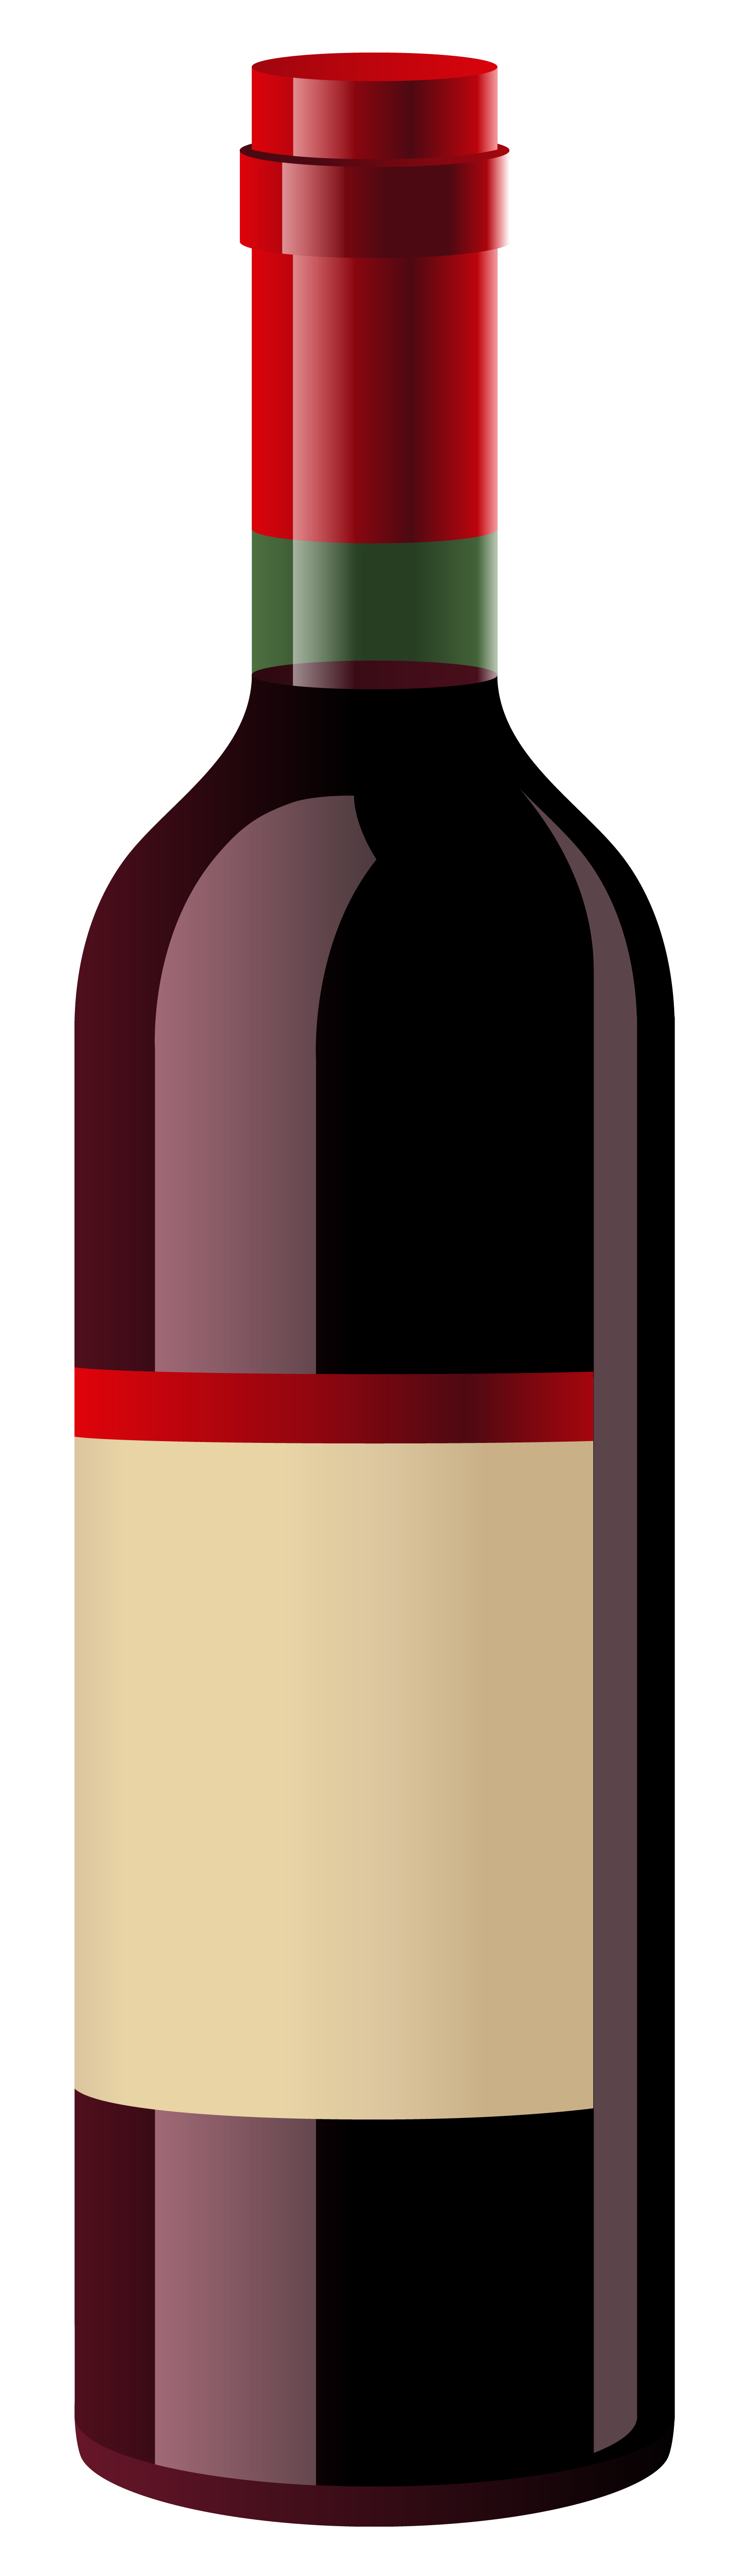 Red wine clipart best. Alcohol bottle cartoon png transparent